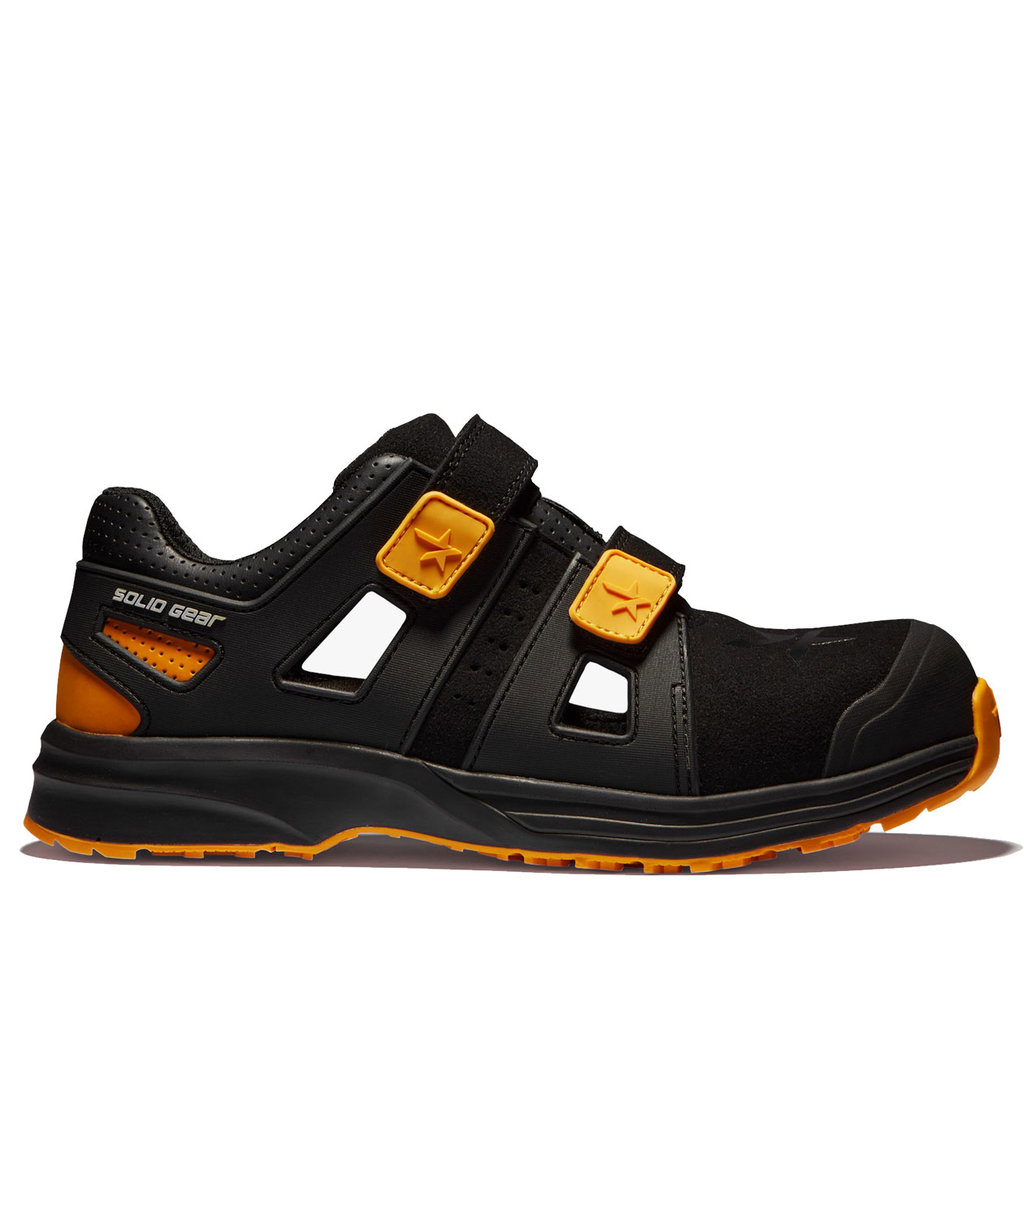 Solid Gear Dune safety sandals S1P, Black/Yellow